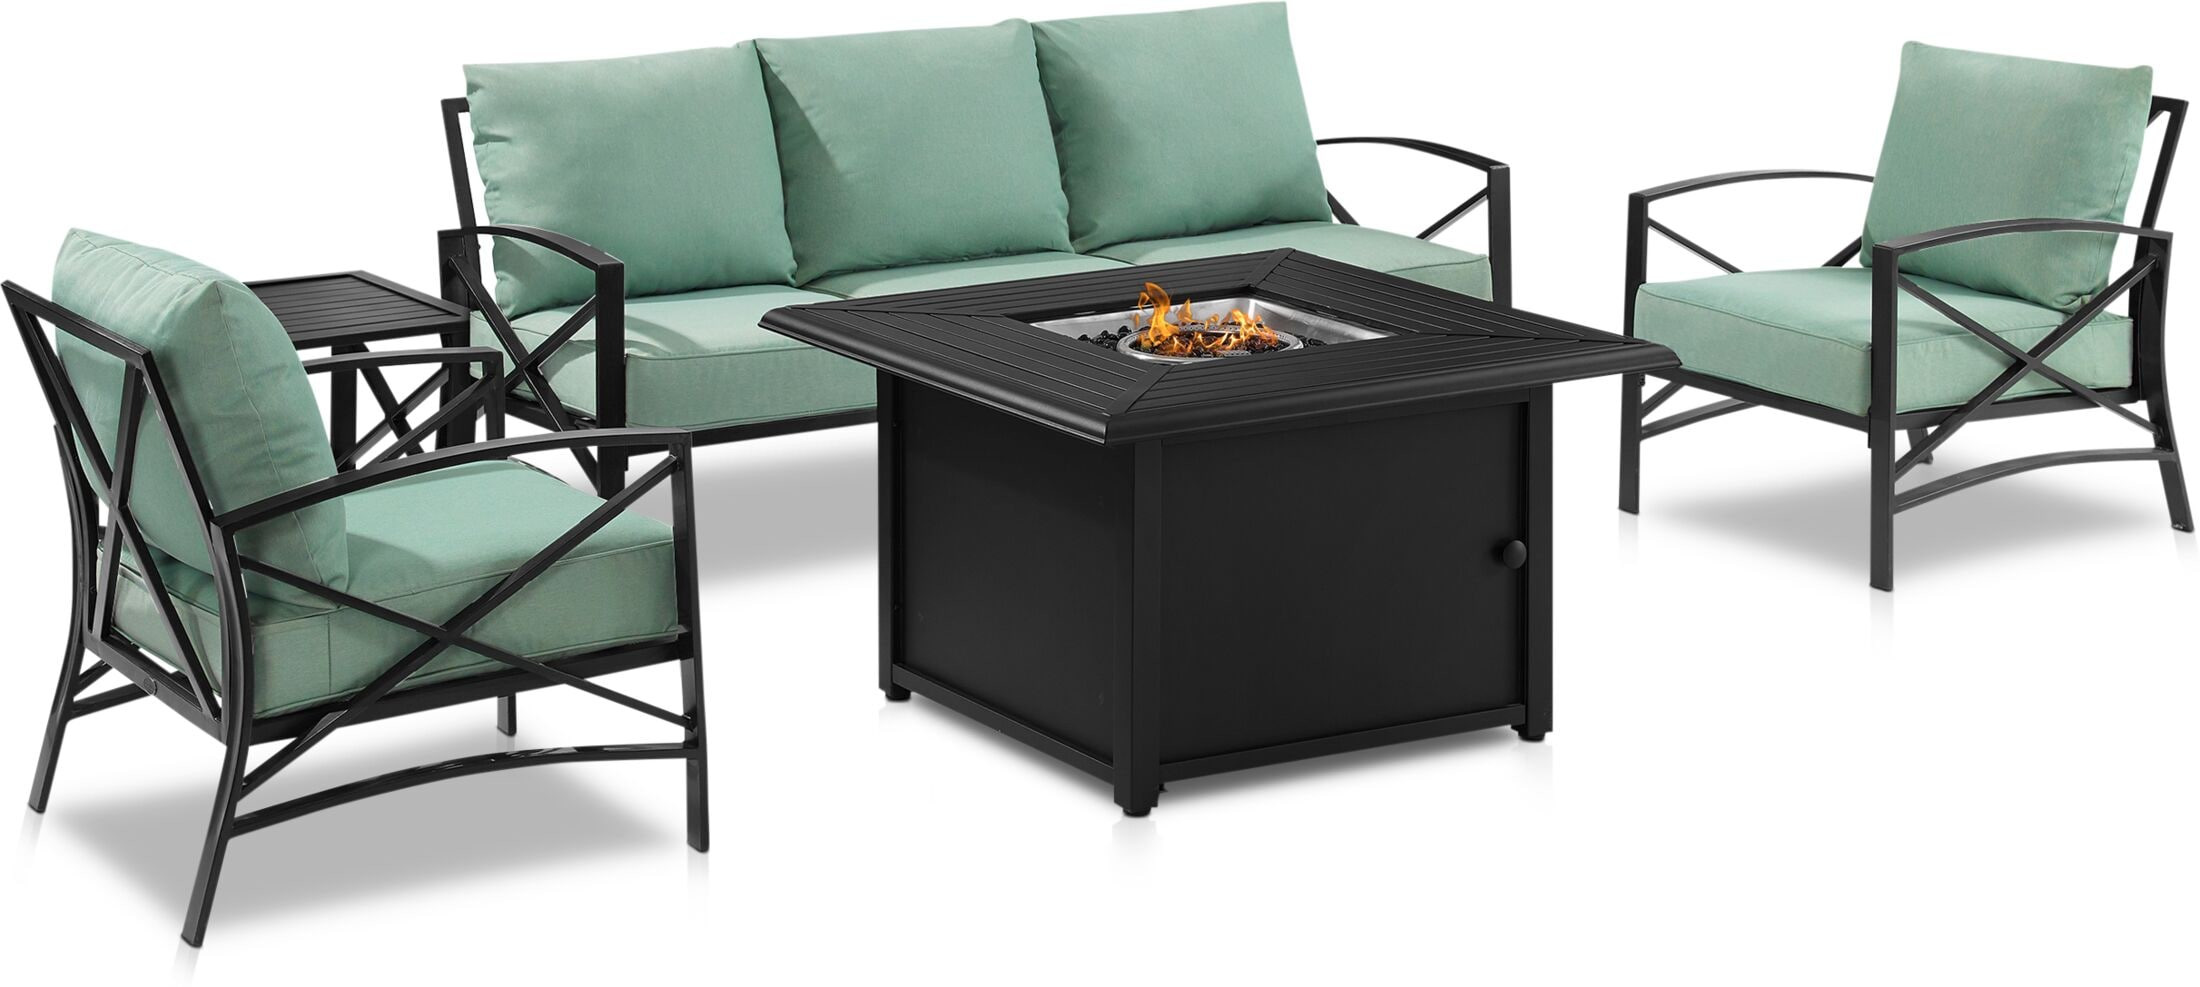 Outdoor Furniture - Clarion Outdoor Sofa, 2 Chairs and Fire Table Set